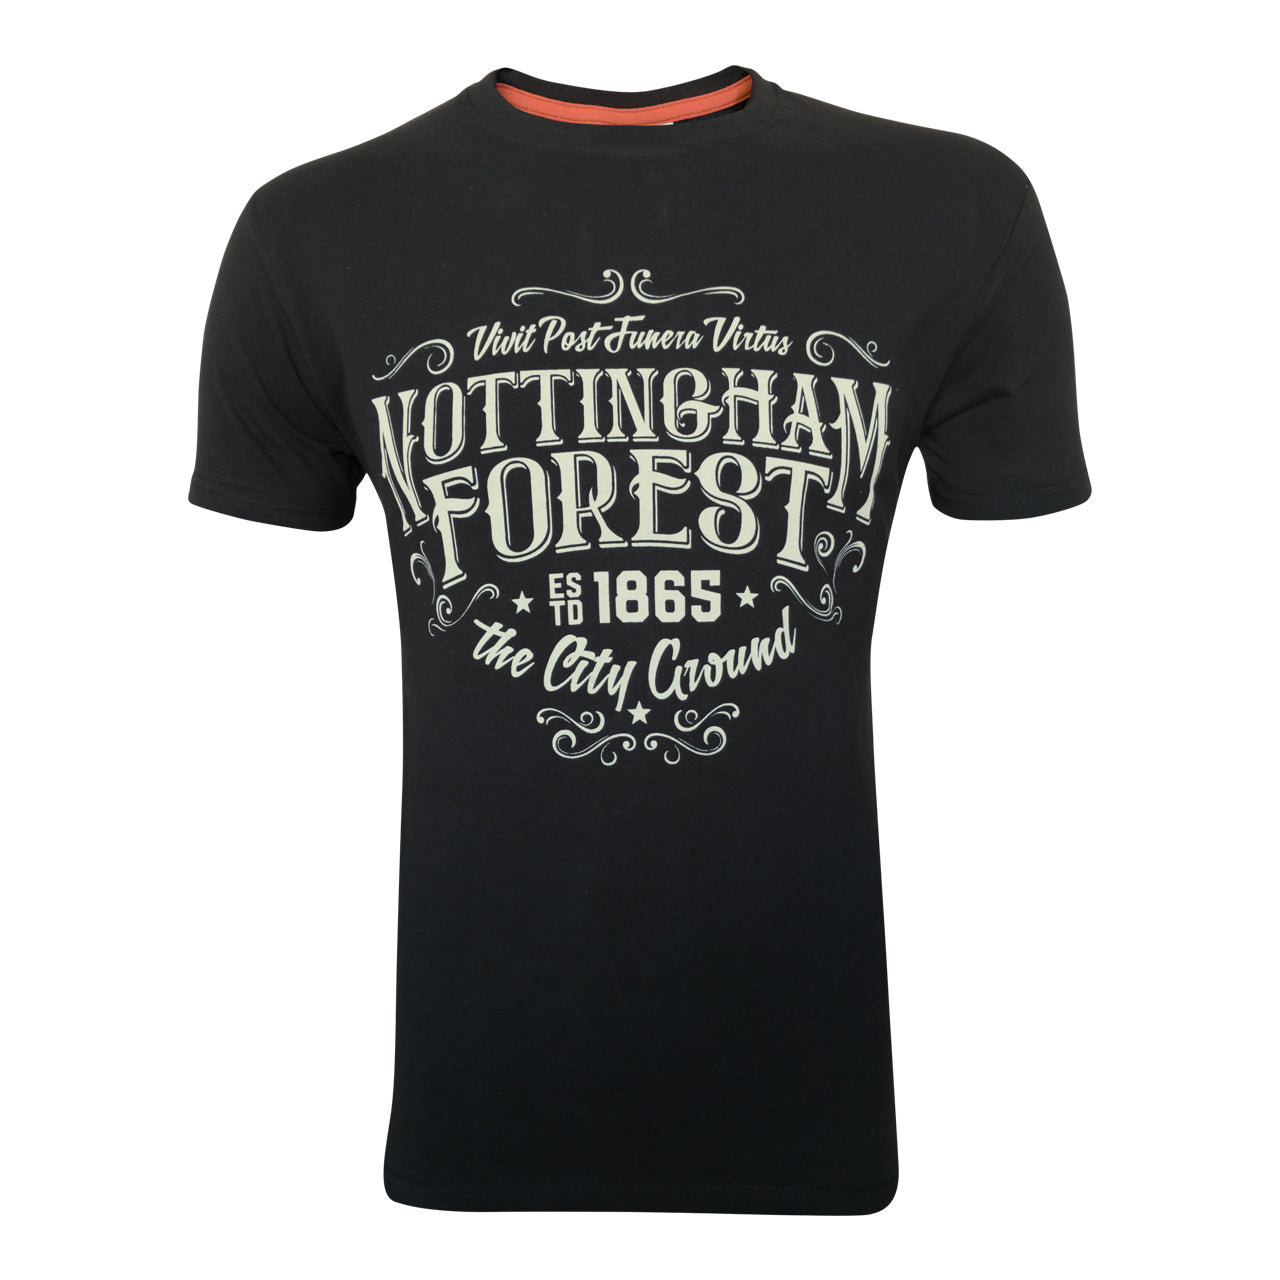 NFFC Mens Black Motto T-Shirt